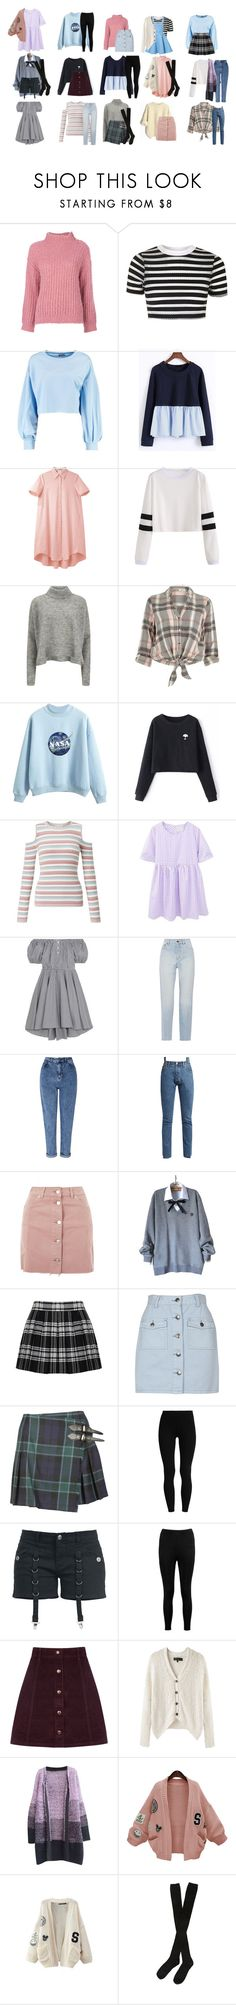 """""""Rose Summers Outfit"""" by silentdoll ❤ liked on Polyvore featuring Boutique Moschino, Topshop, Boohoo, WithChic, Charles Anastase, Designers Remix, River Island, Miss Selfridge, Caroline Constas and Yves Saint Laurent"""